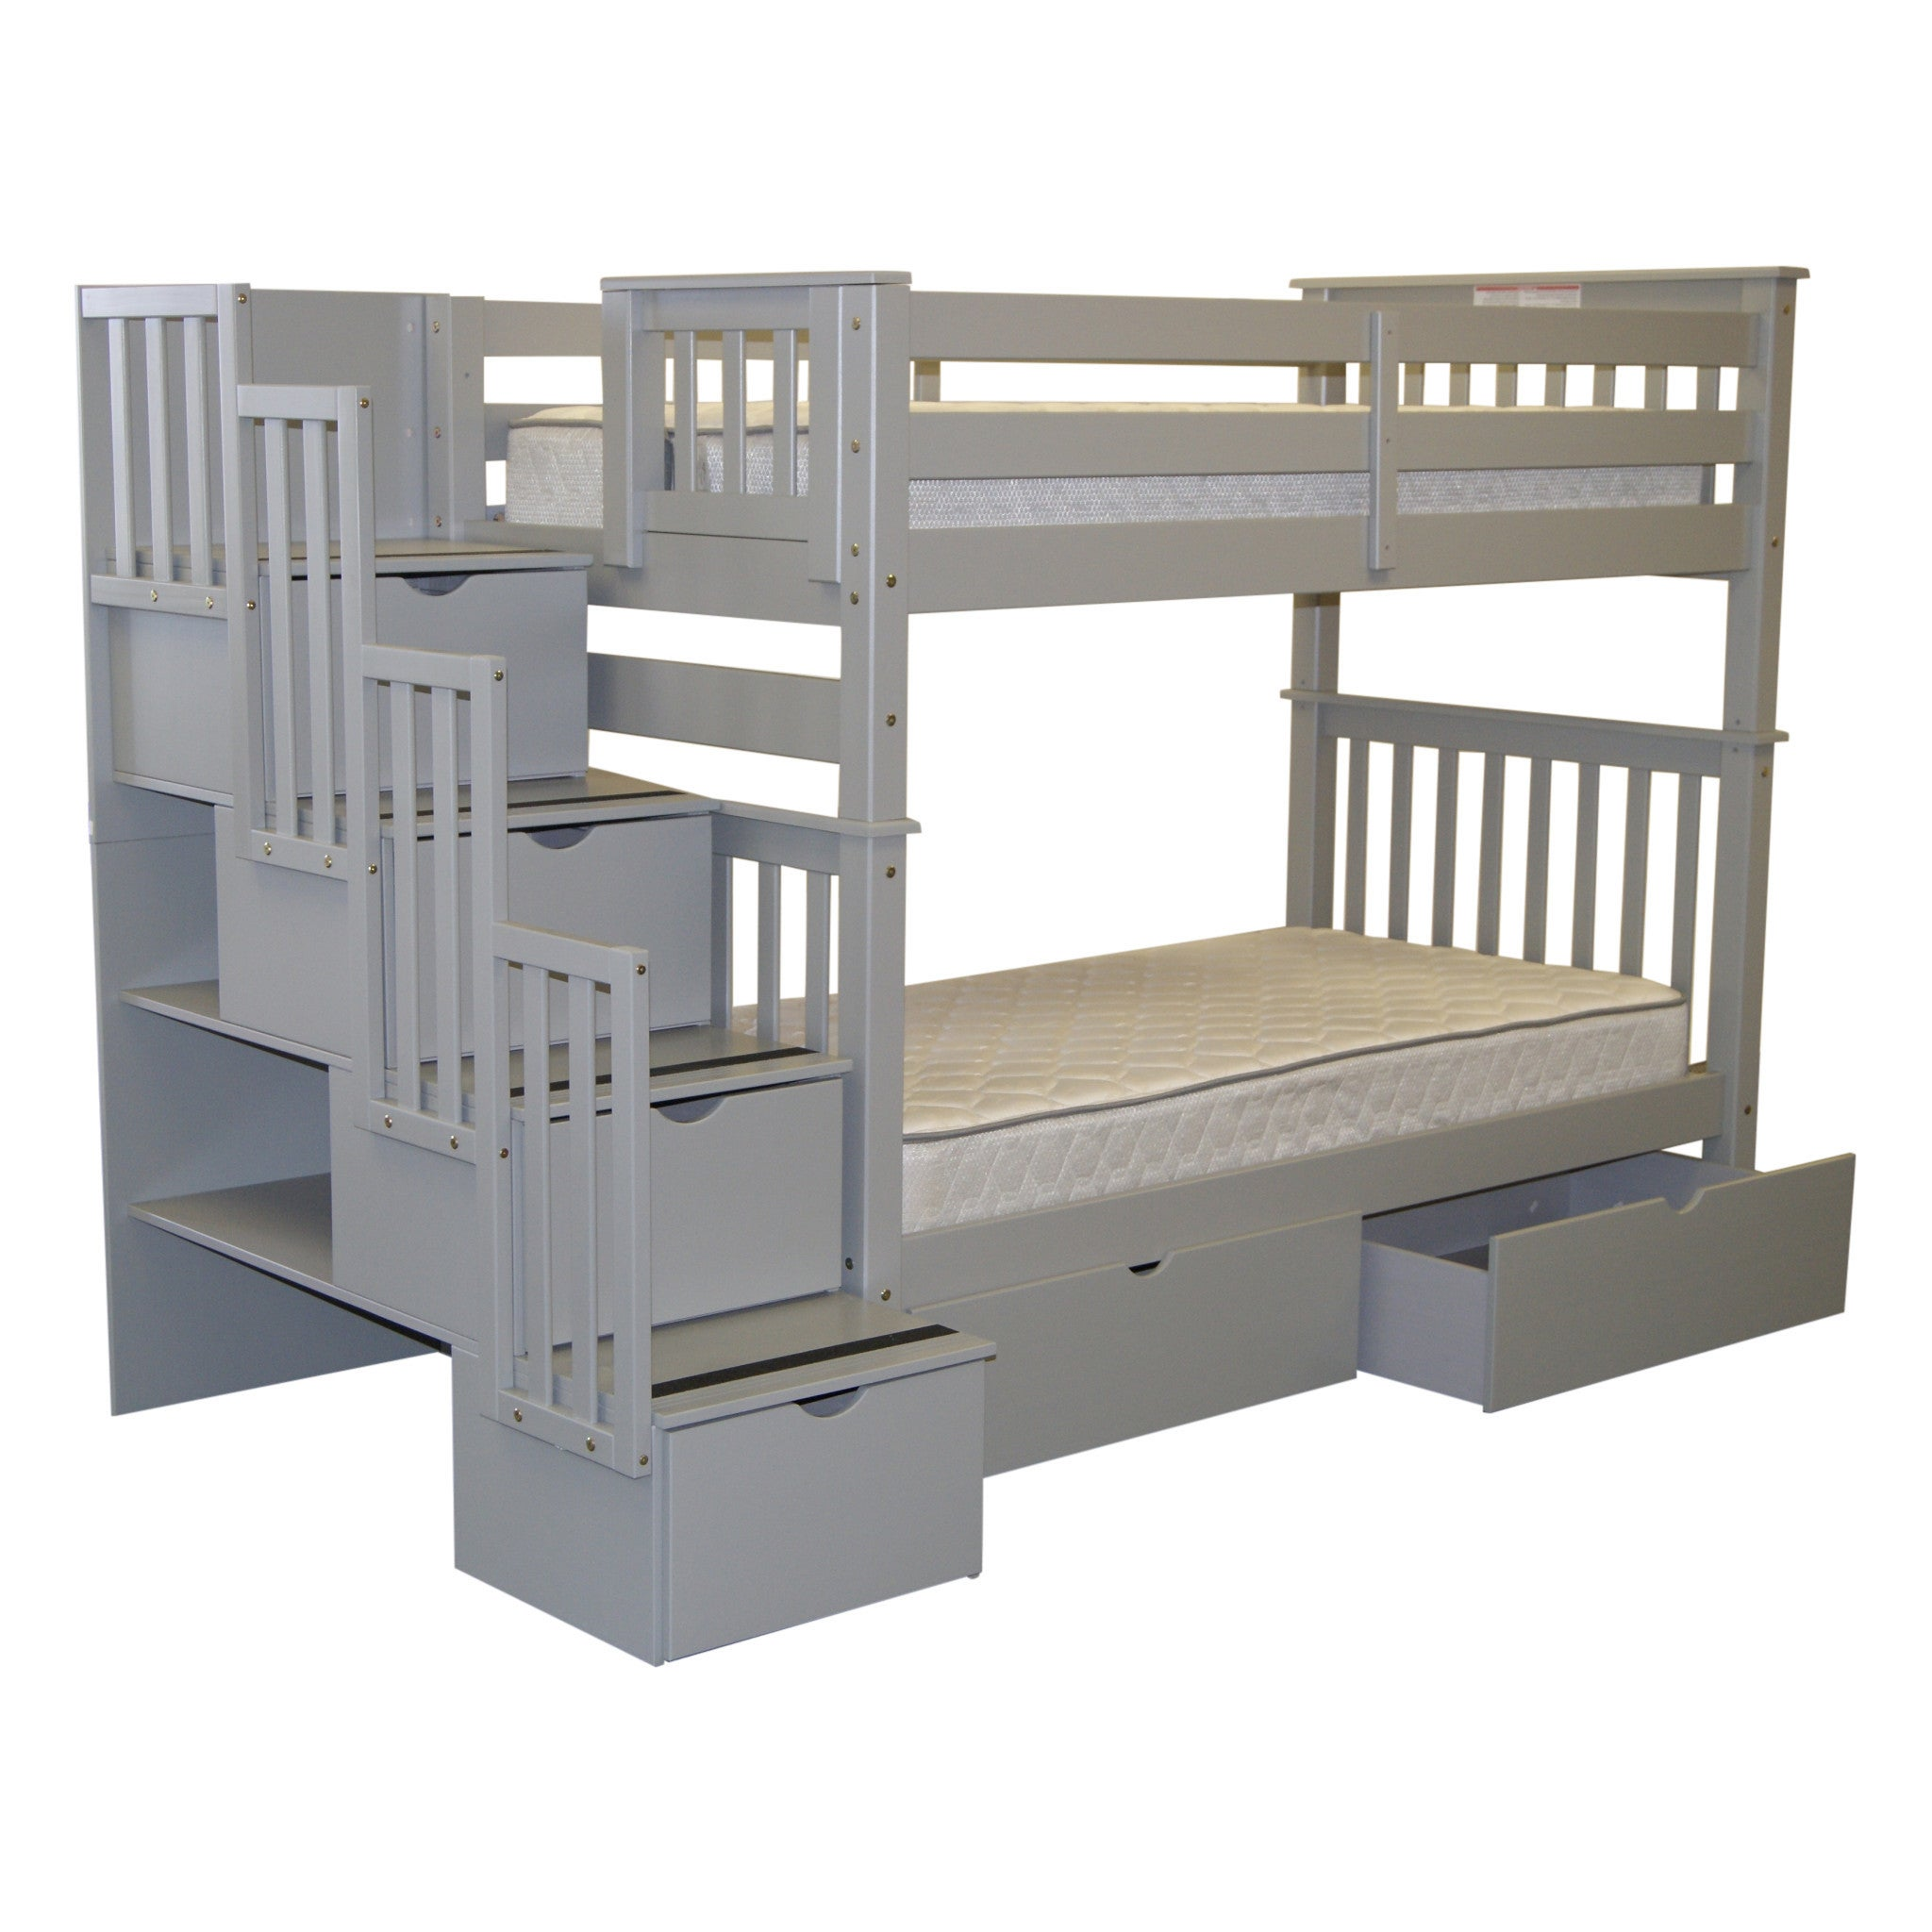 Shop Bedz King Bunk Beds Twin Over Twin Stairway 4 Step 2 Bed